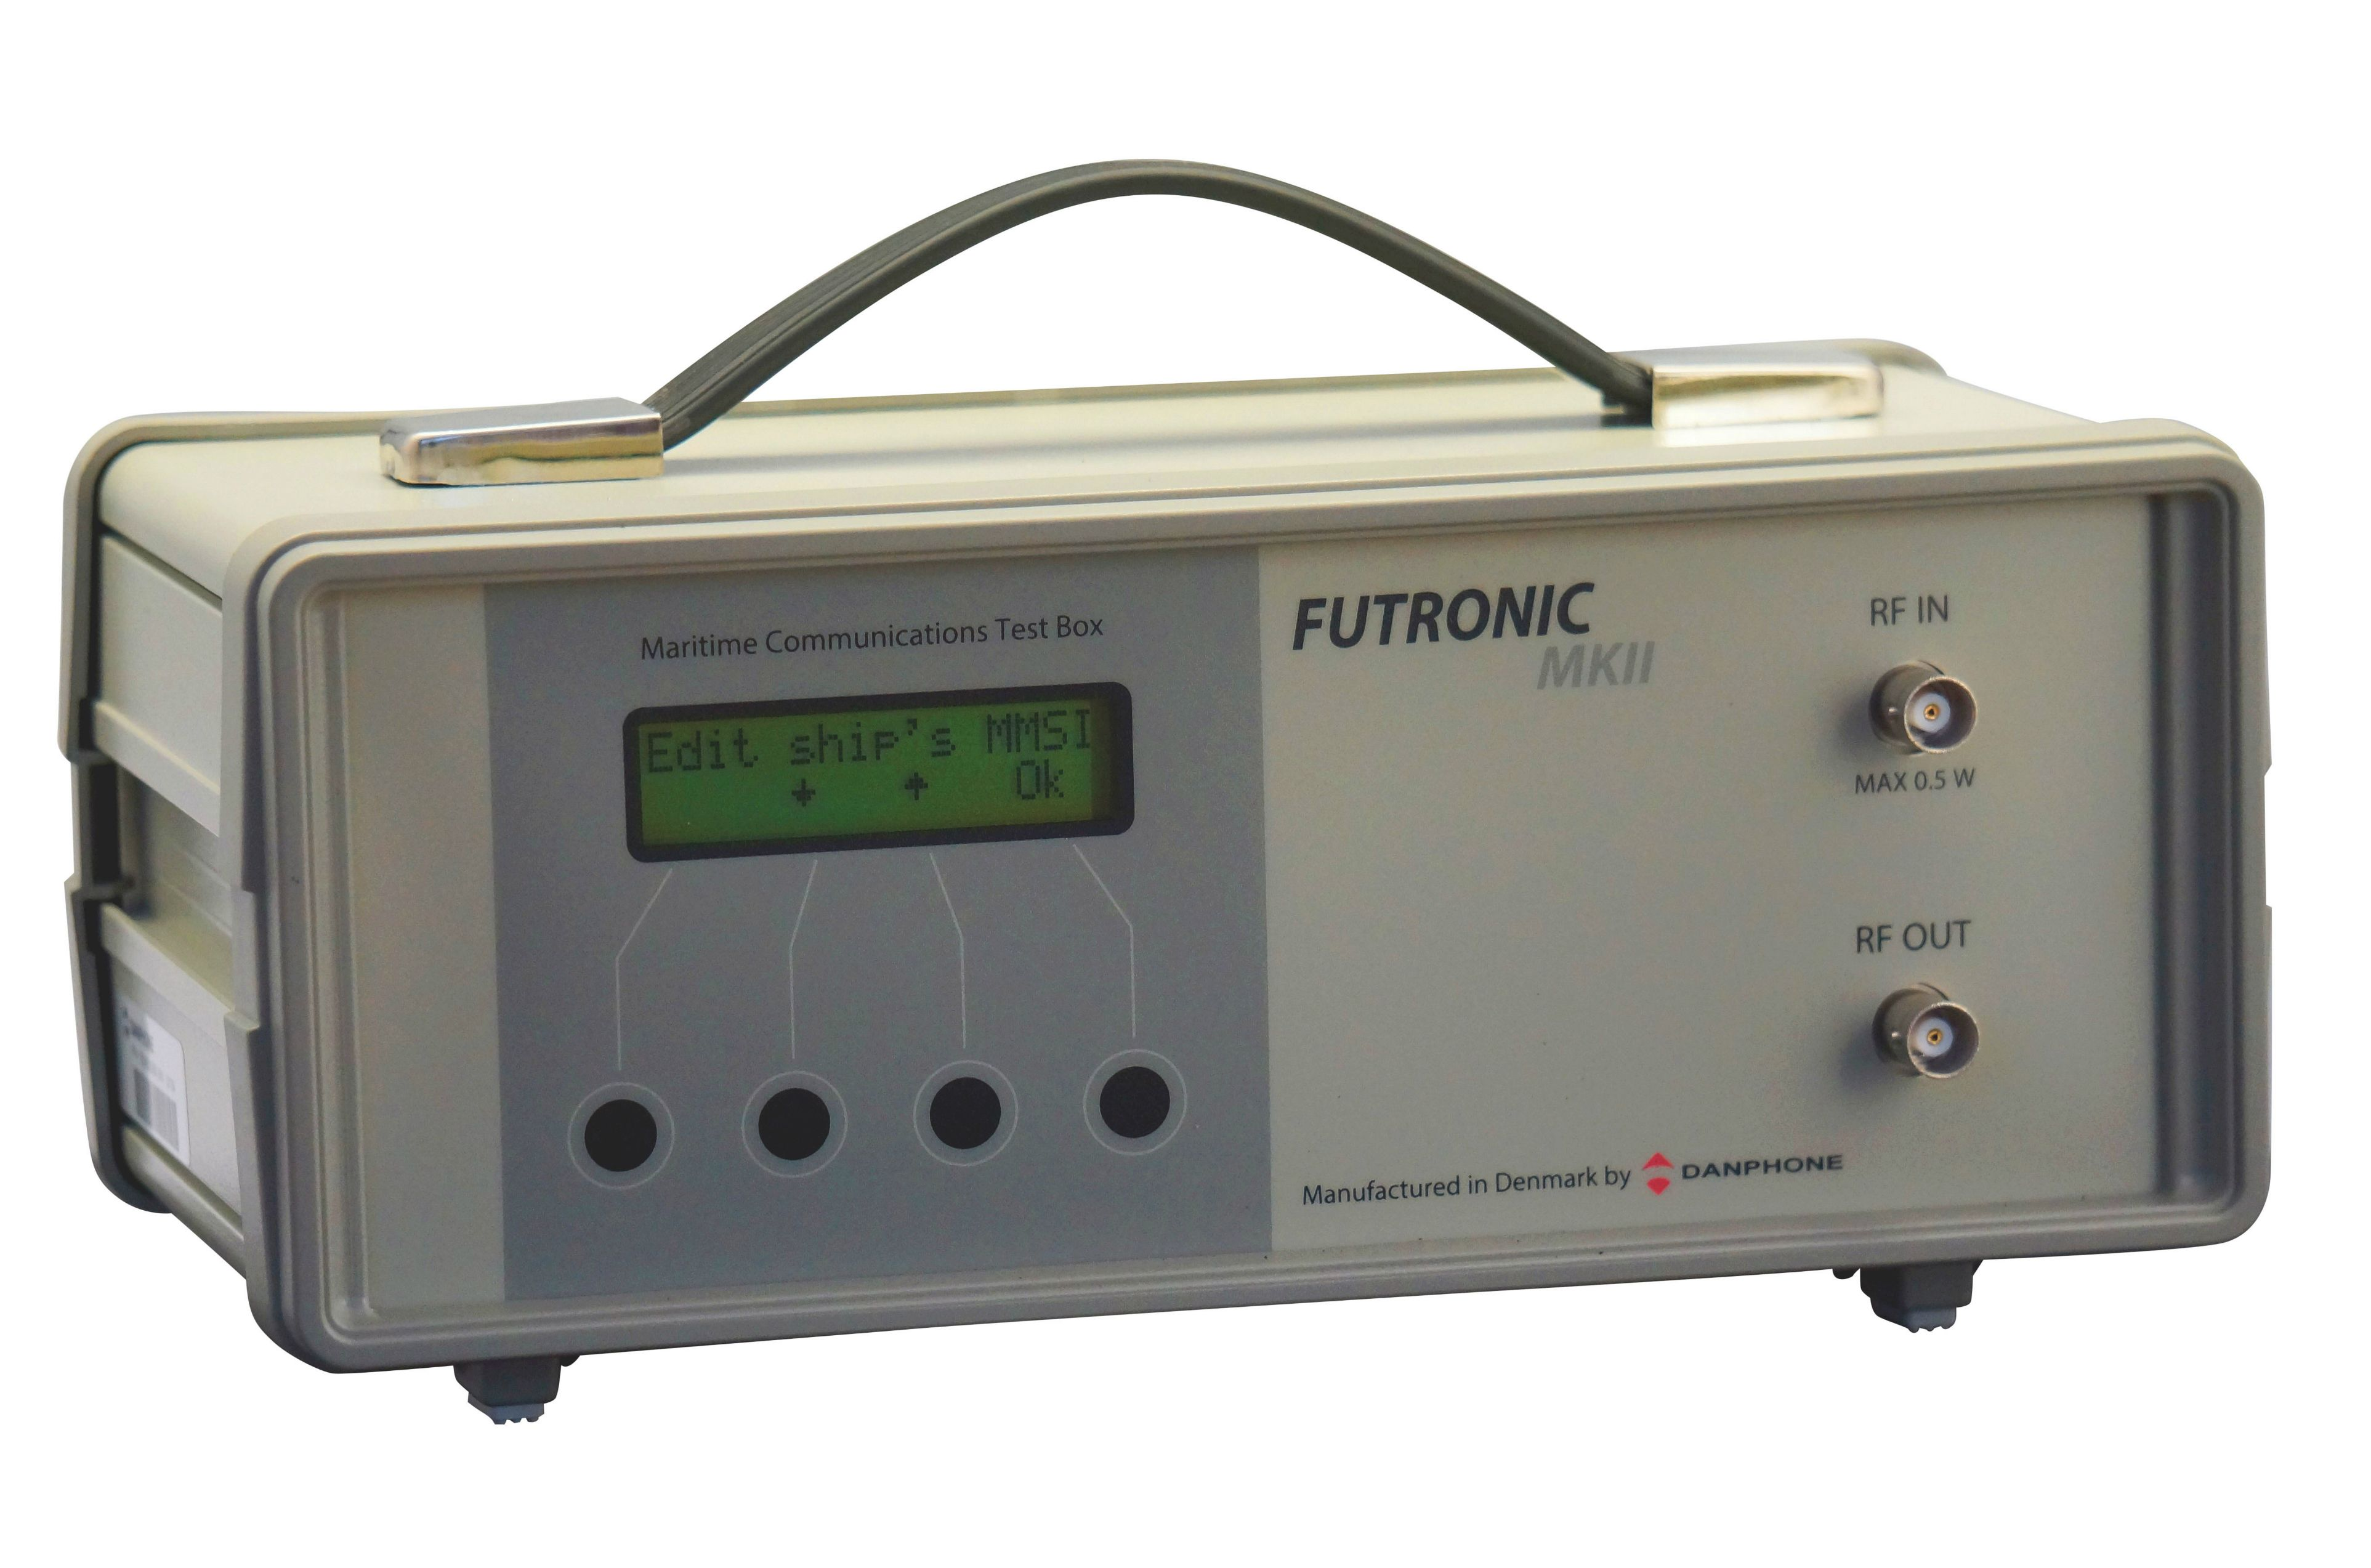 Futronic GMDSS test equipment